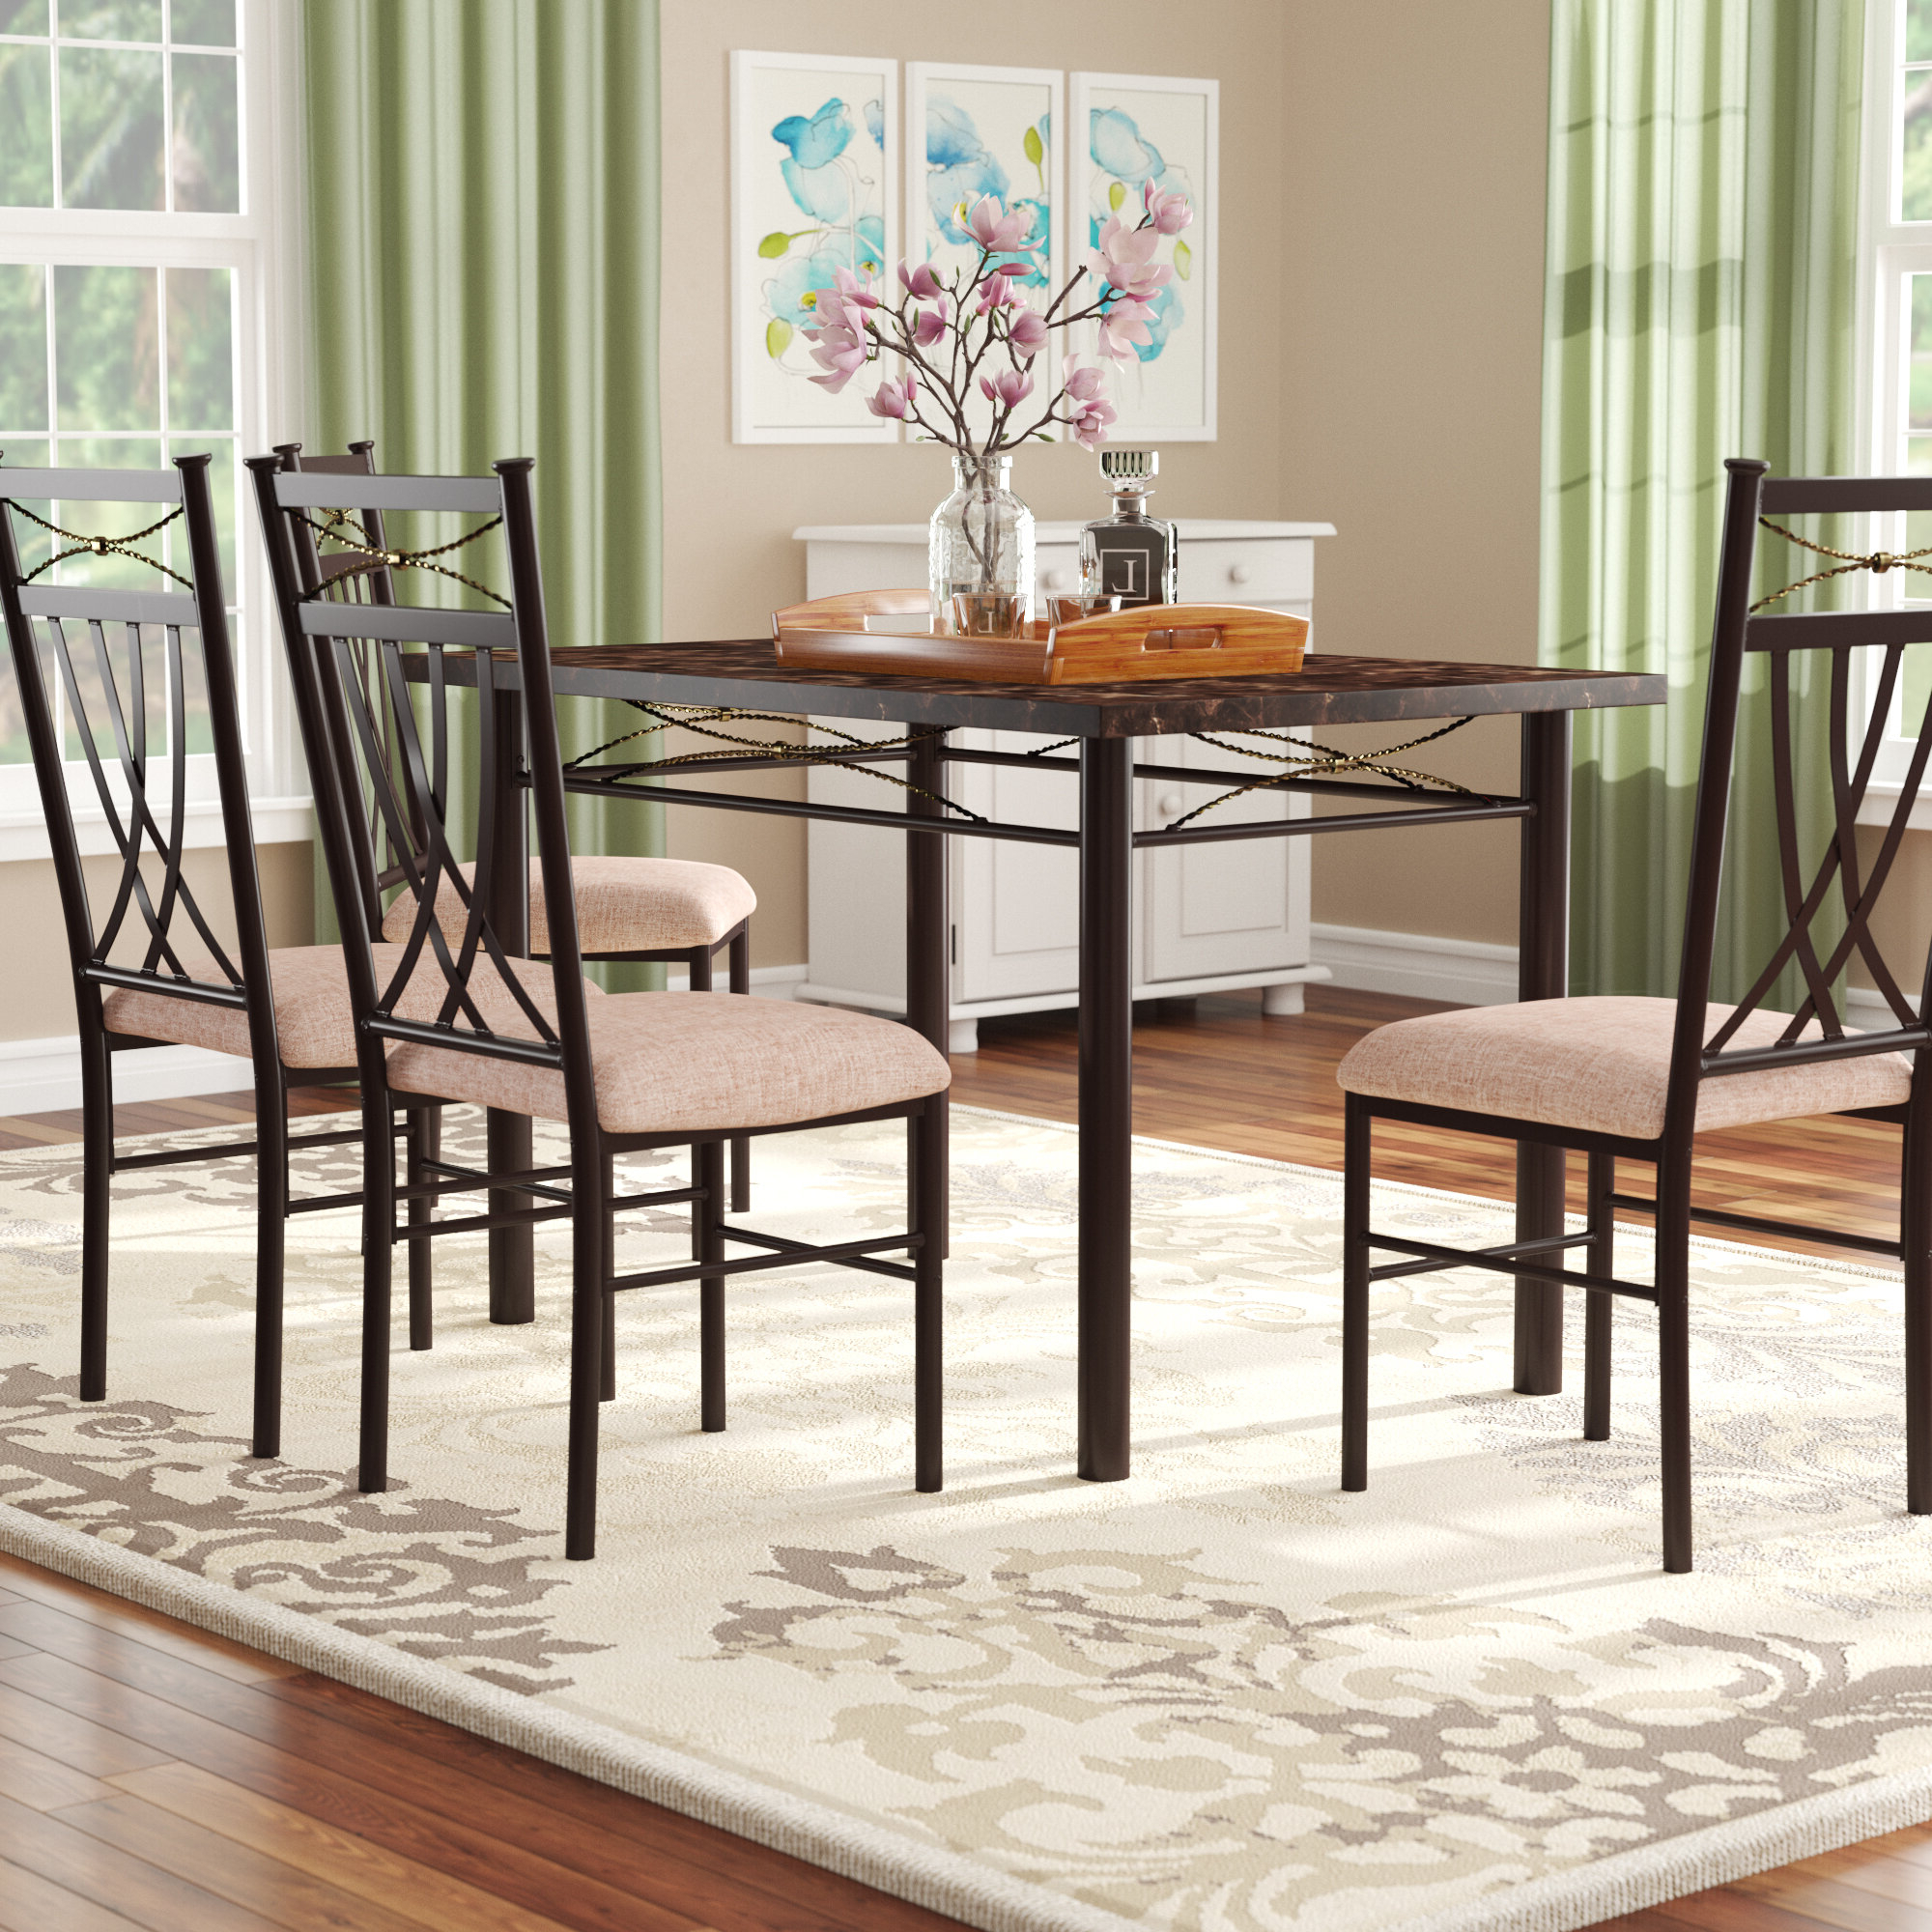 Casiano 5 Piece Dining Sets In Most Recent Red Barrel Studio Branden 5 Piece Dining Set & Reviews (View 7 of 25)